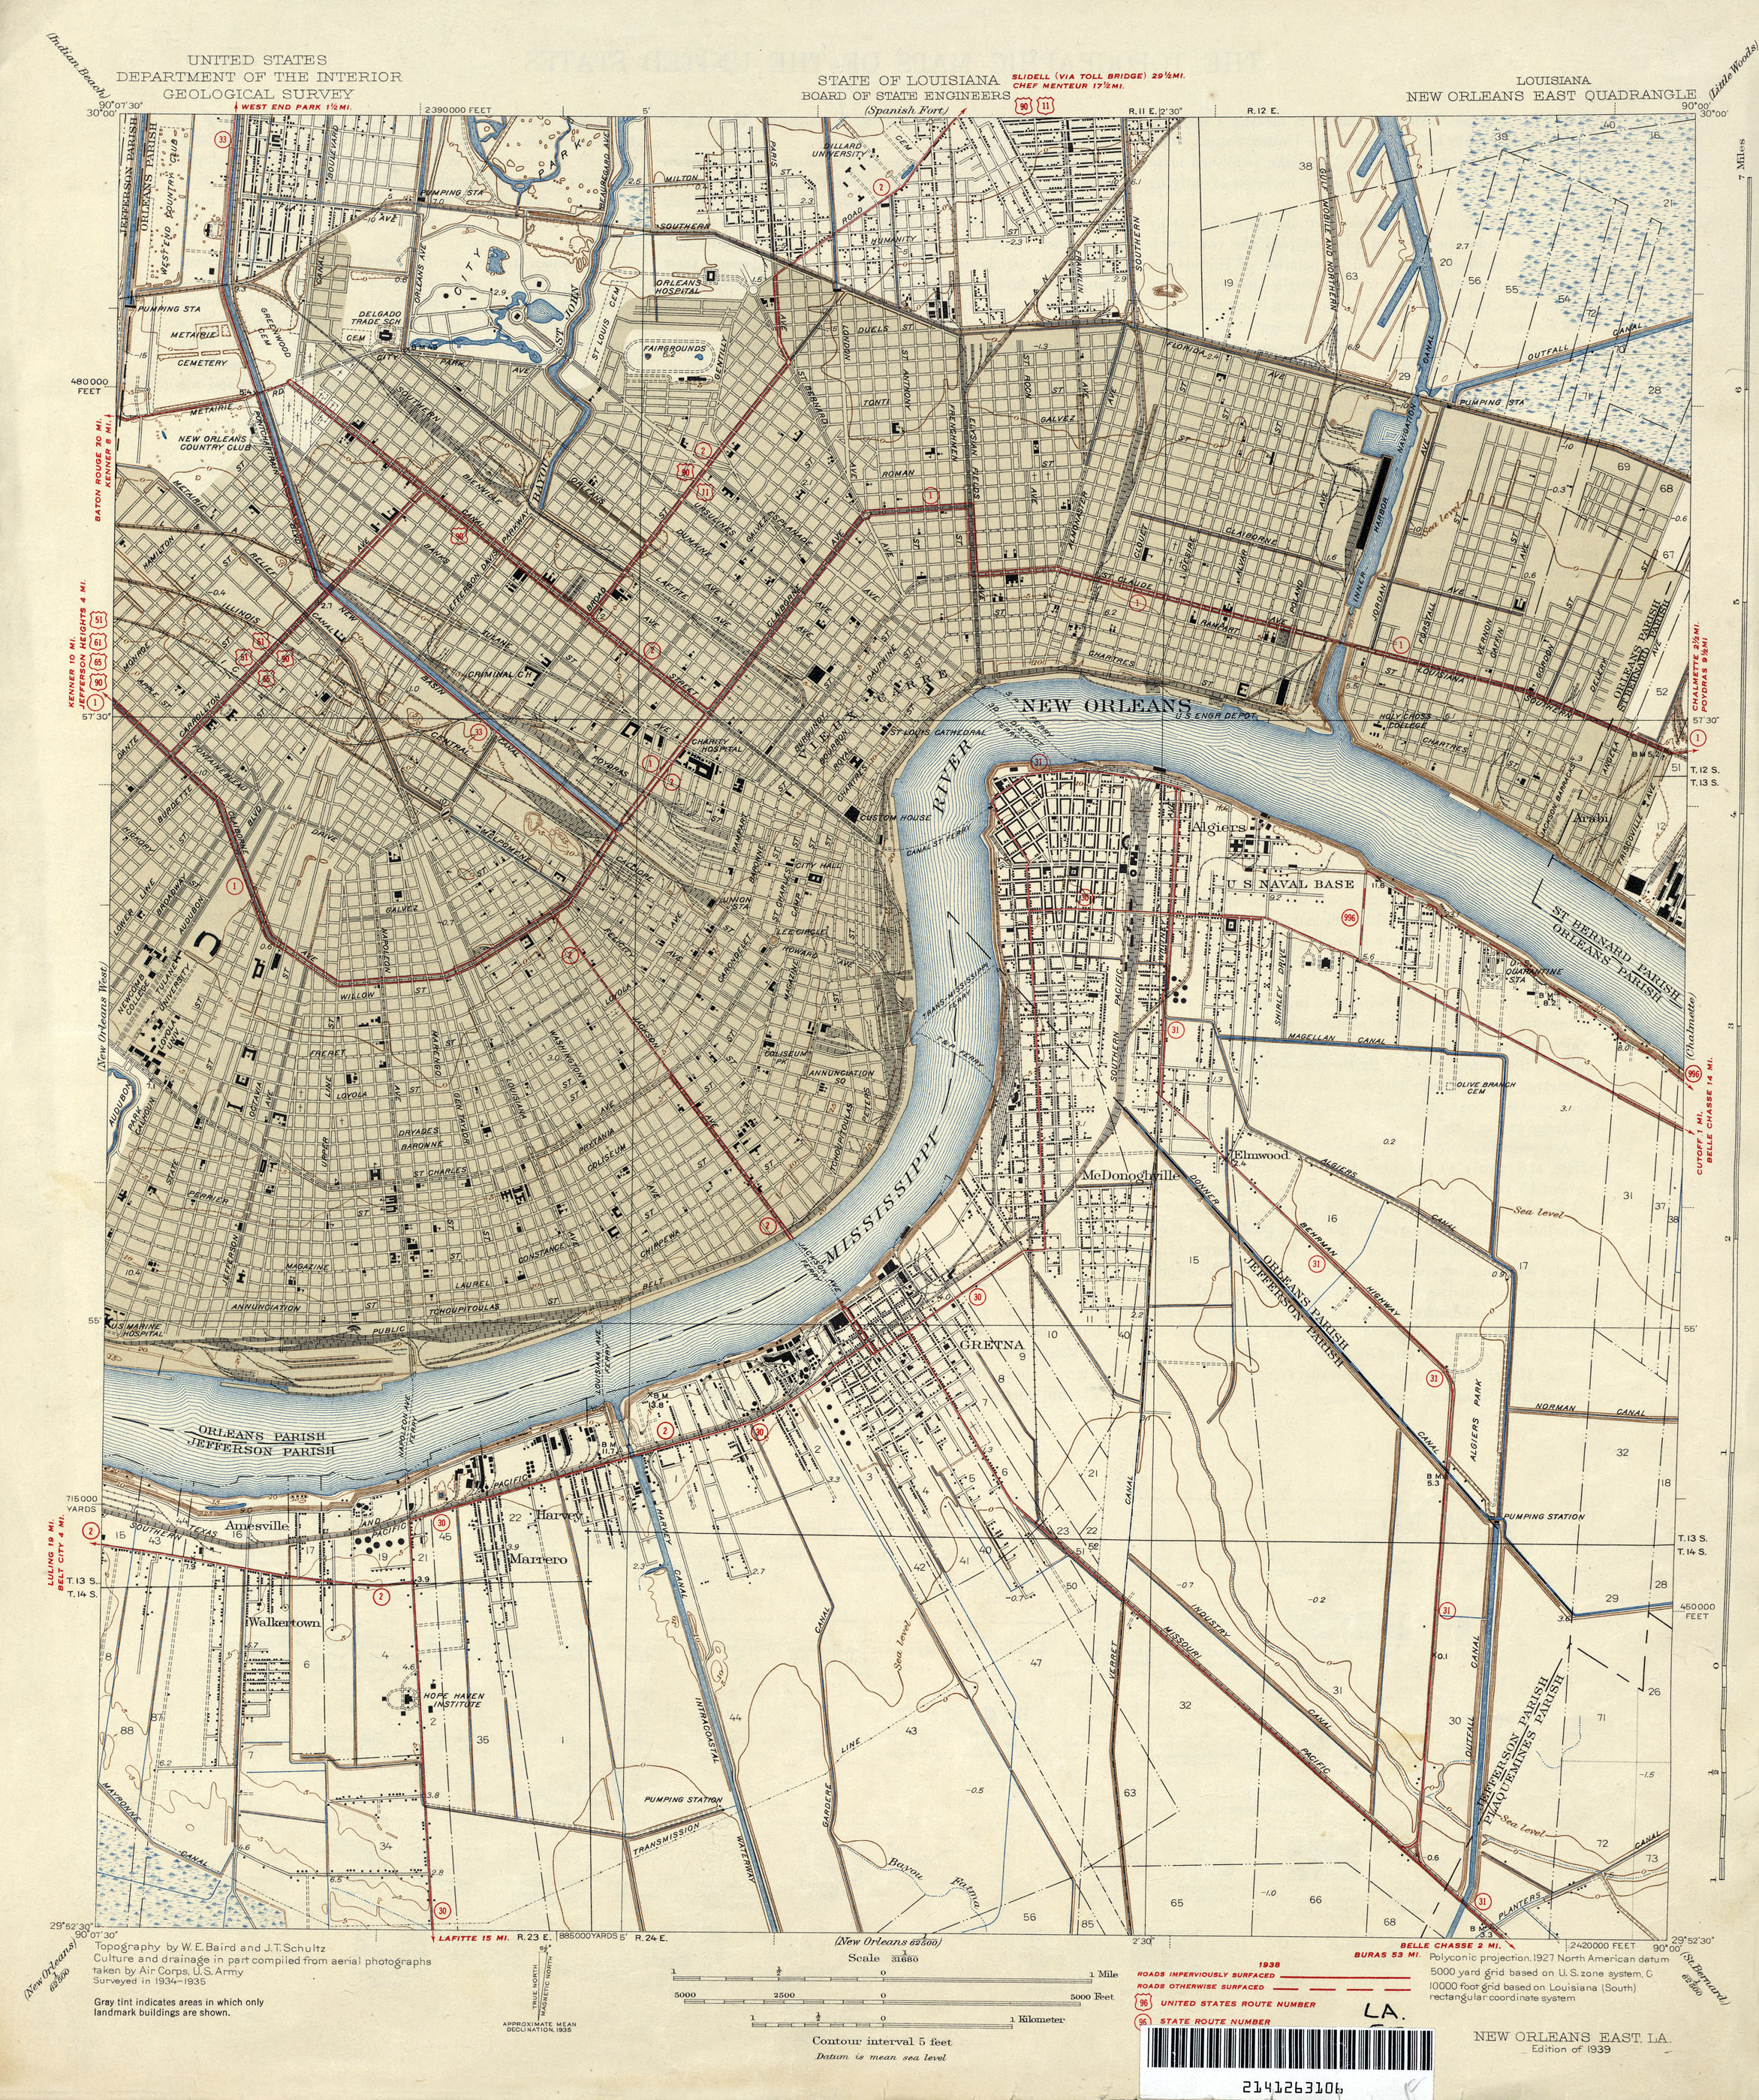 File:New Orleans Section and West Bank 1935 Map.jpg - Wikimedia Commons